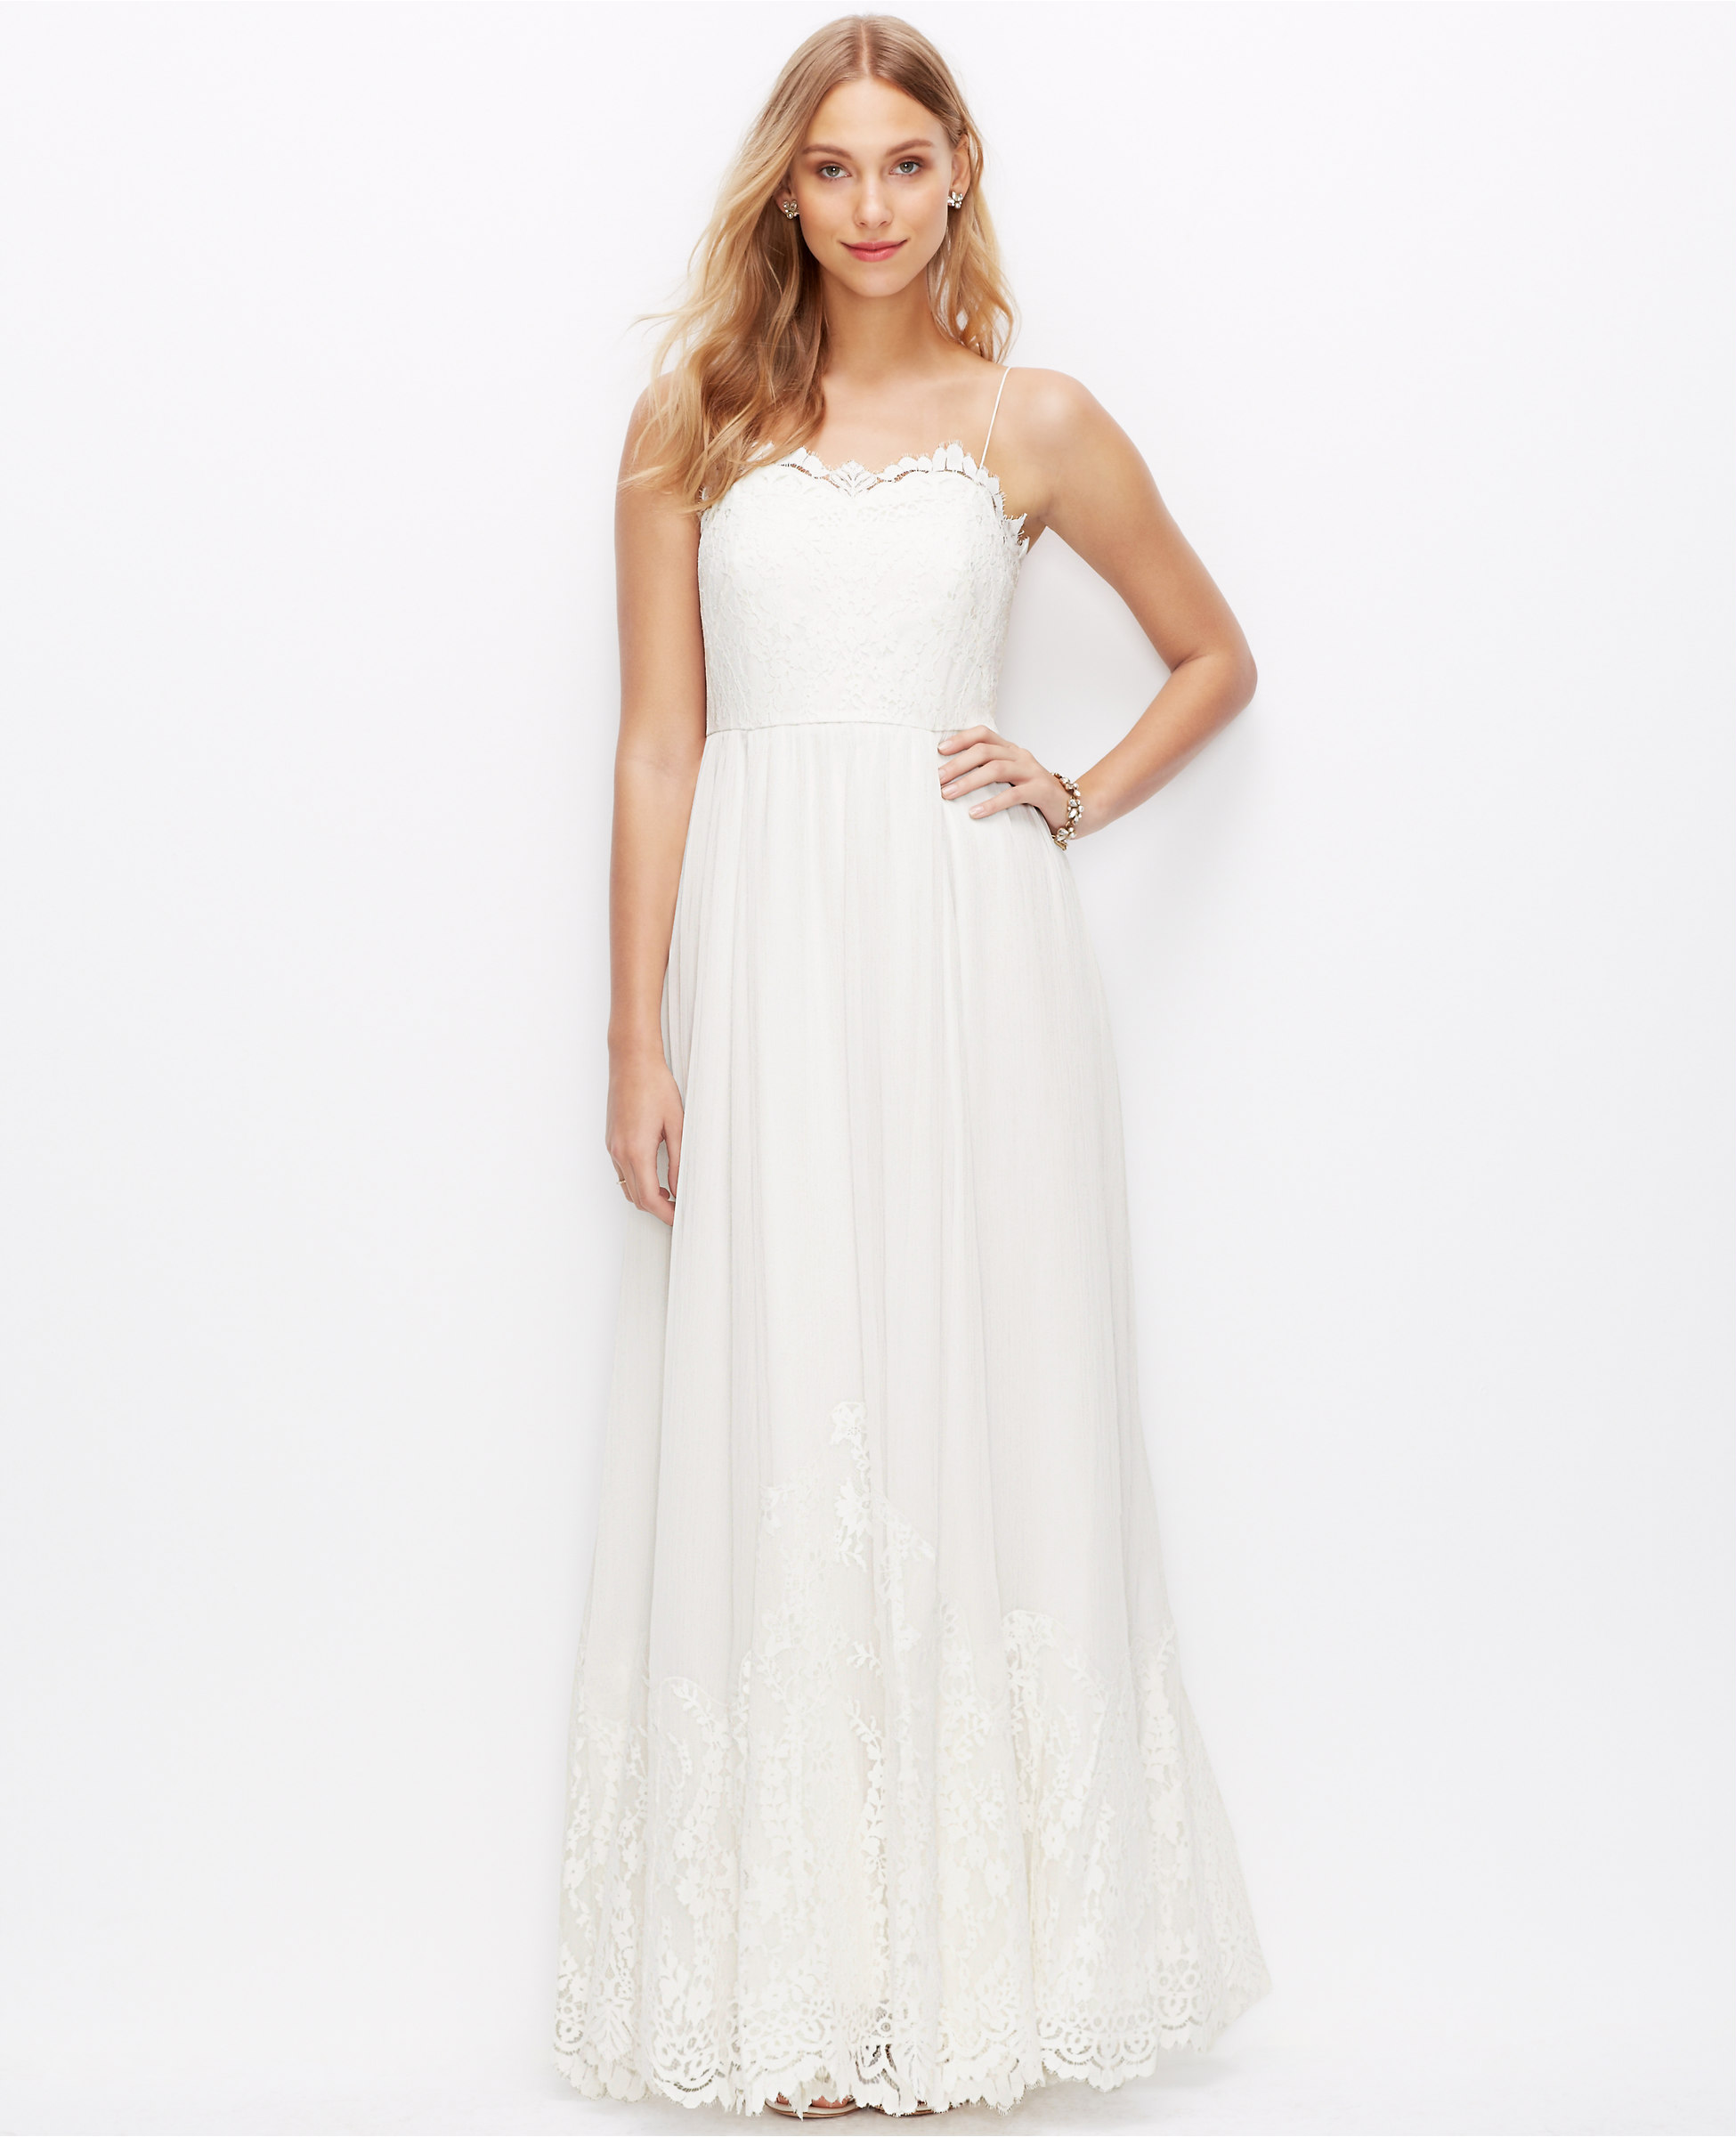 20 Trendiest Wedding Dresses Under $1,000